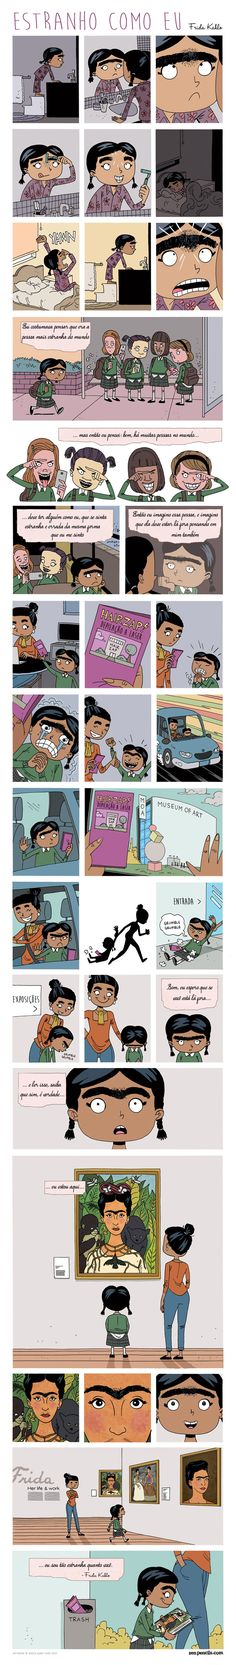 Frida Kahlo comic strip by Gavin Aung Than on Bored Panda. There are many more … Frida Kahlo comic strip by Gavin Aung Than on Bored Panda. There are many more lie this including Eleanor Roosevelt, Maya Angelou, Vincent Van Gogh… Maya Angelou, Vincent Van Gogh, Rage Comic, Cute Comics, Faith In Humanity, Bored Panda, Eleanor Roosevelt, Comic Strips, Short Stories